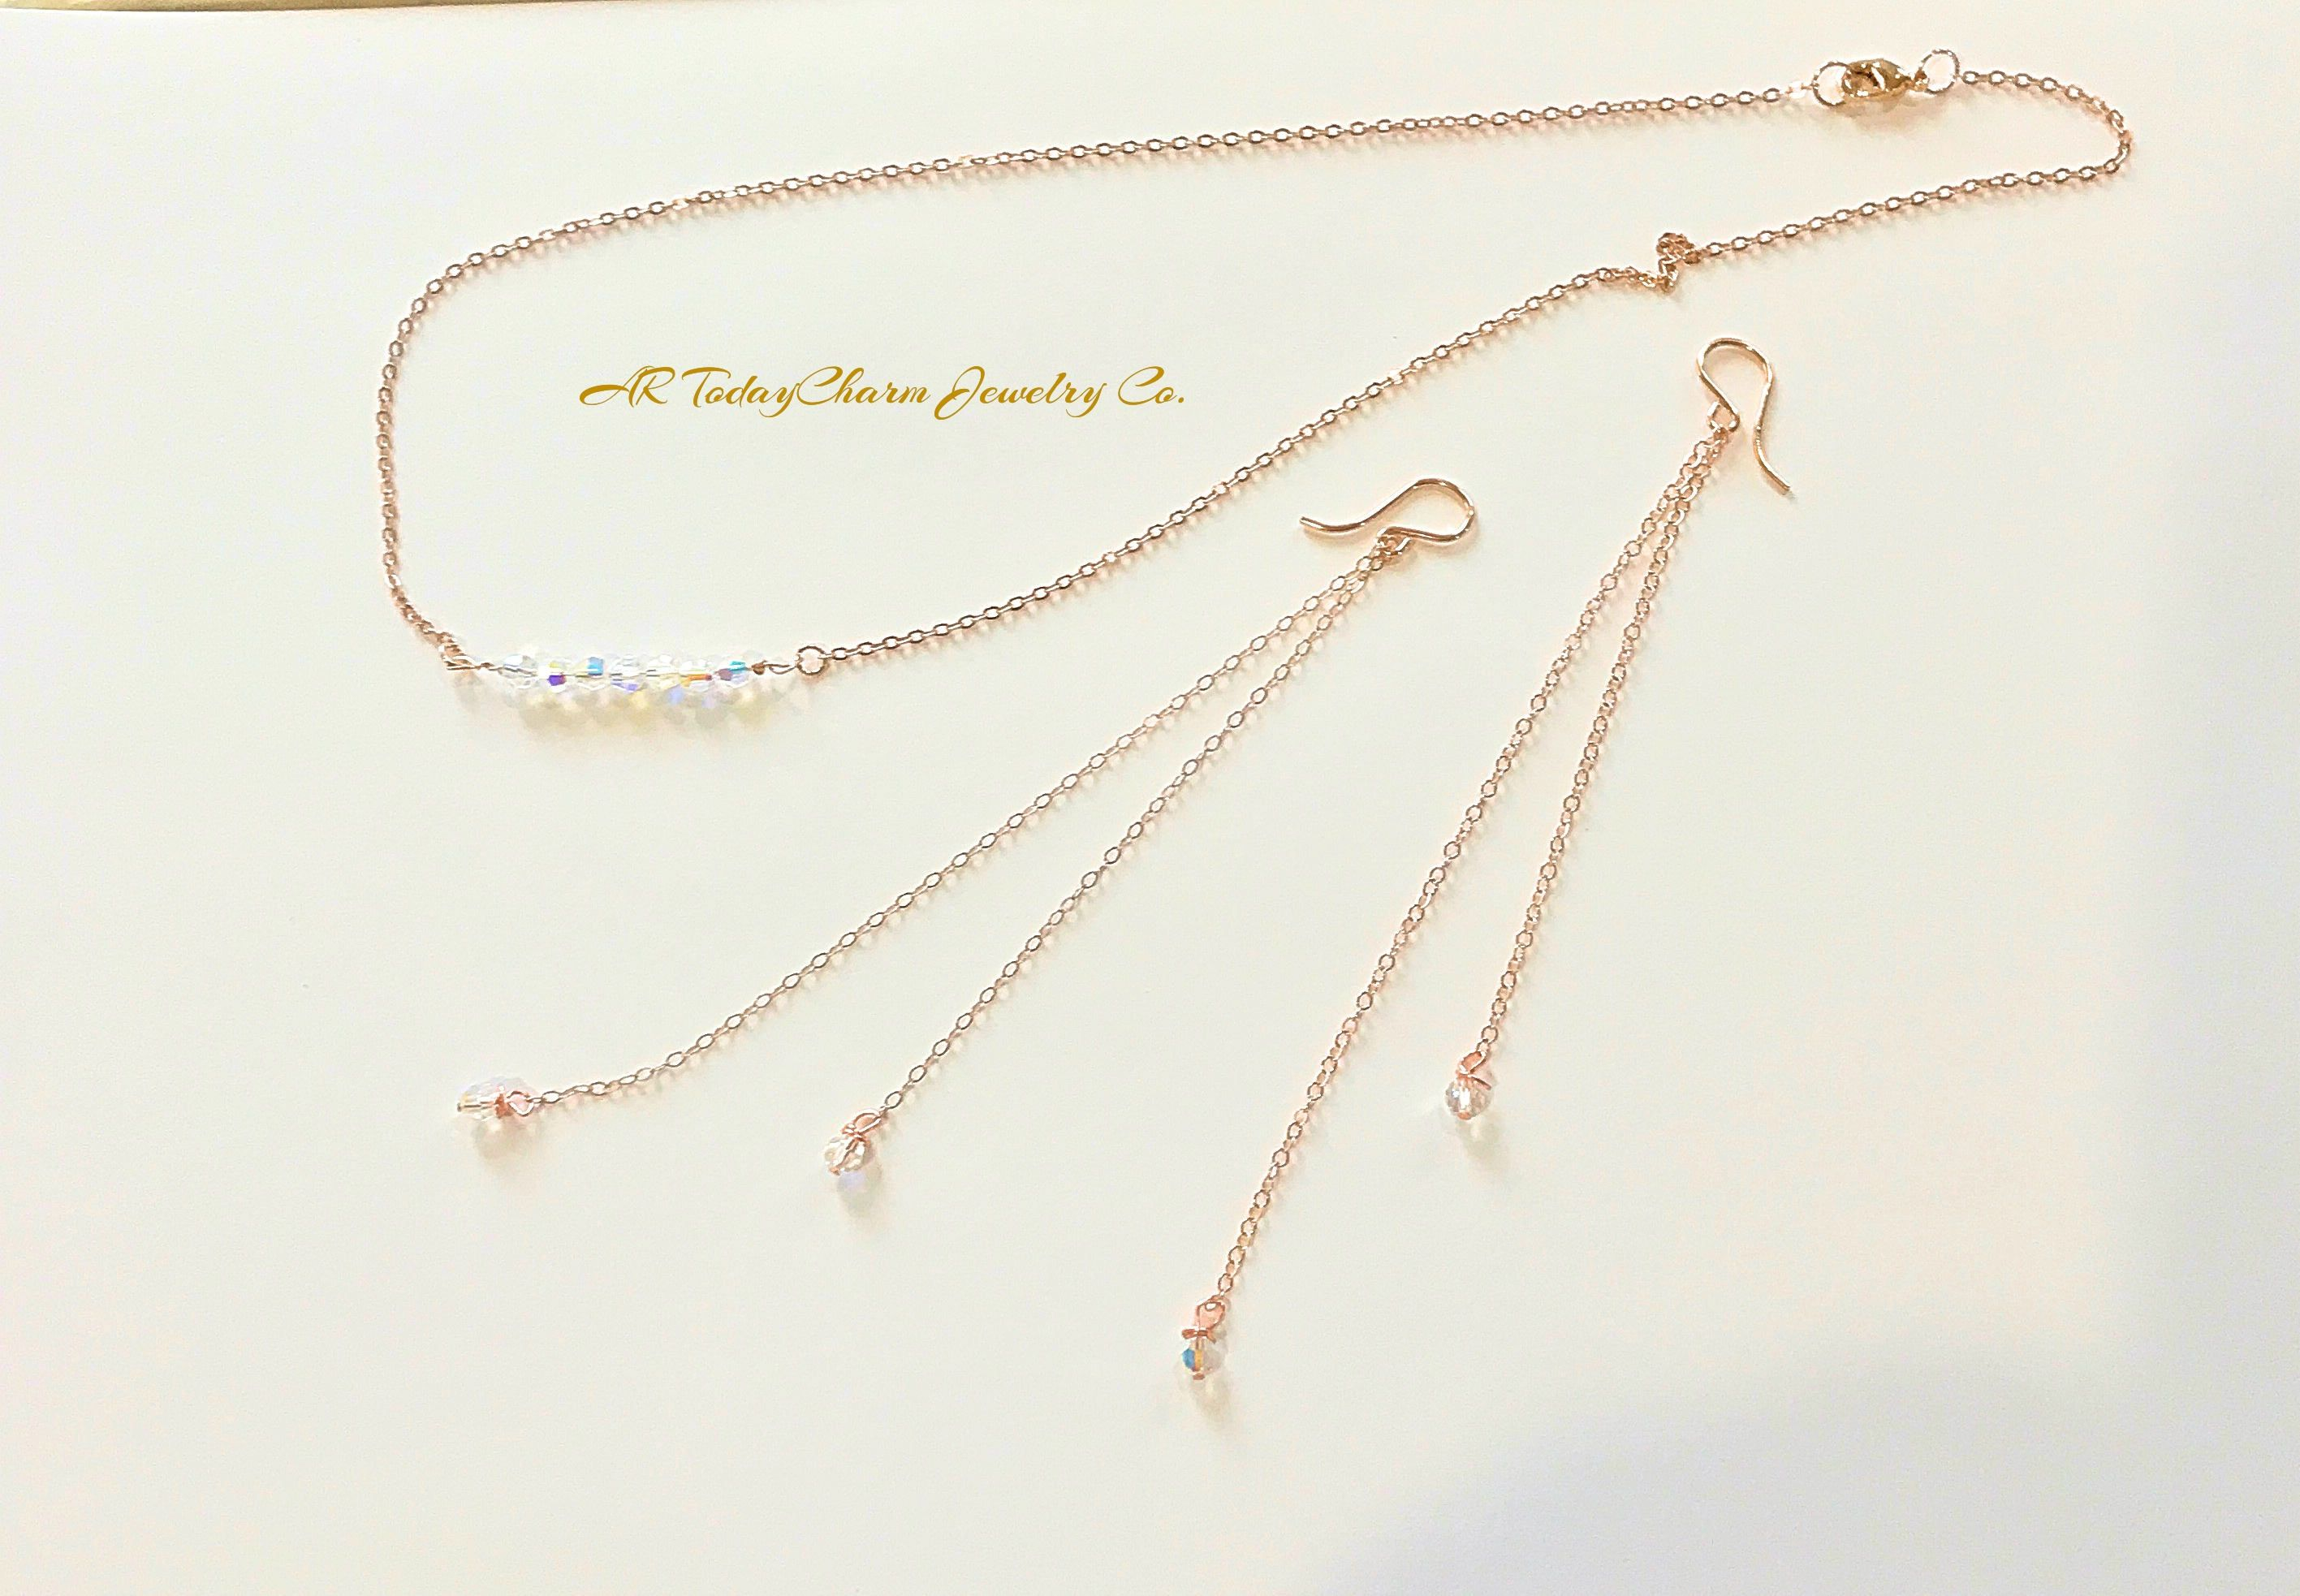 Stunning Beautiful Swarovski Crystal Bar Necklace With 7 Crystals On The Matching Dangling Earrings Rose Gold Chain 2 Per Earring